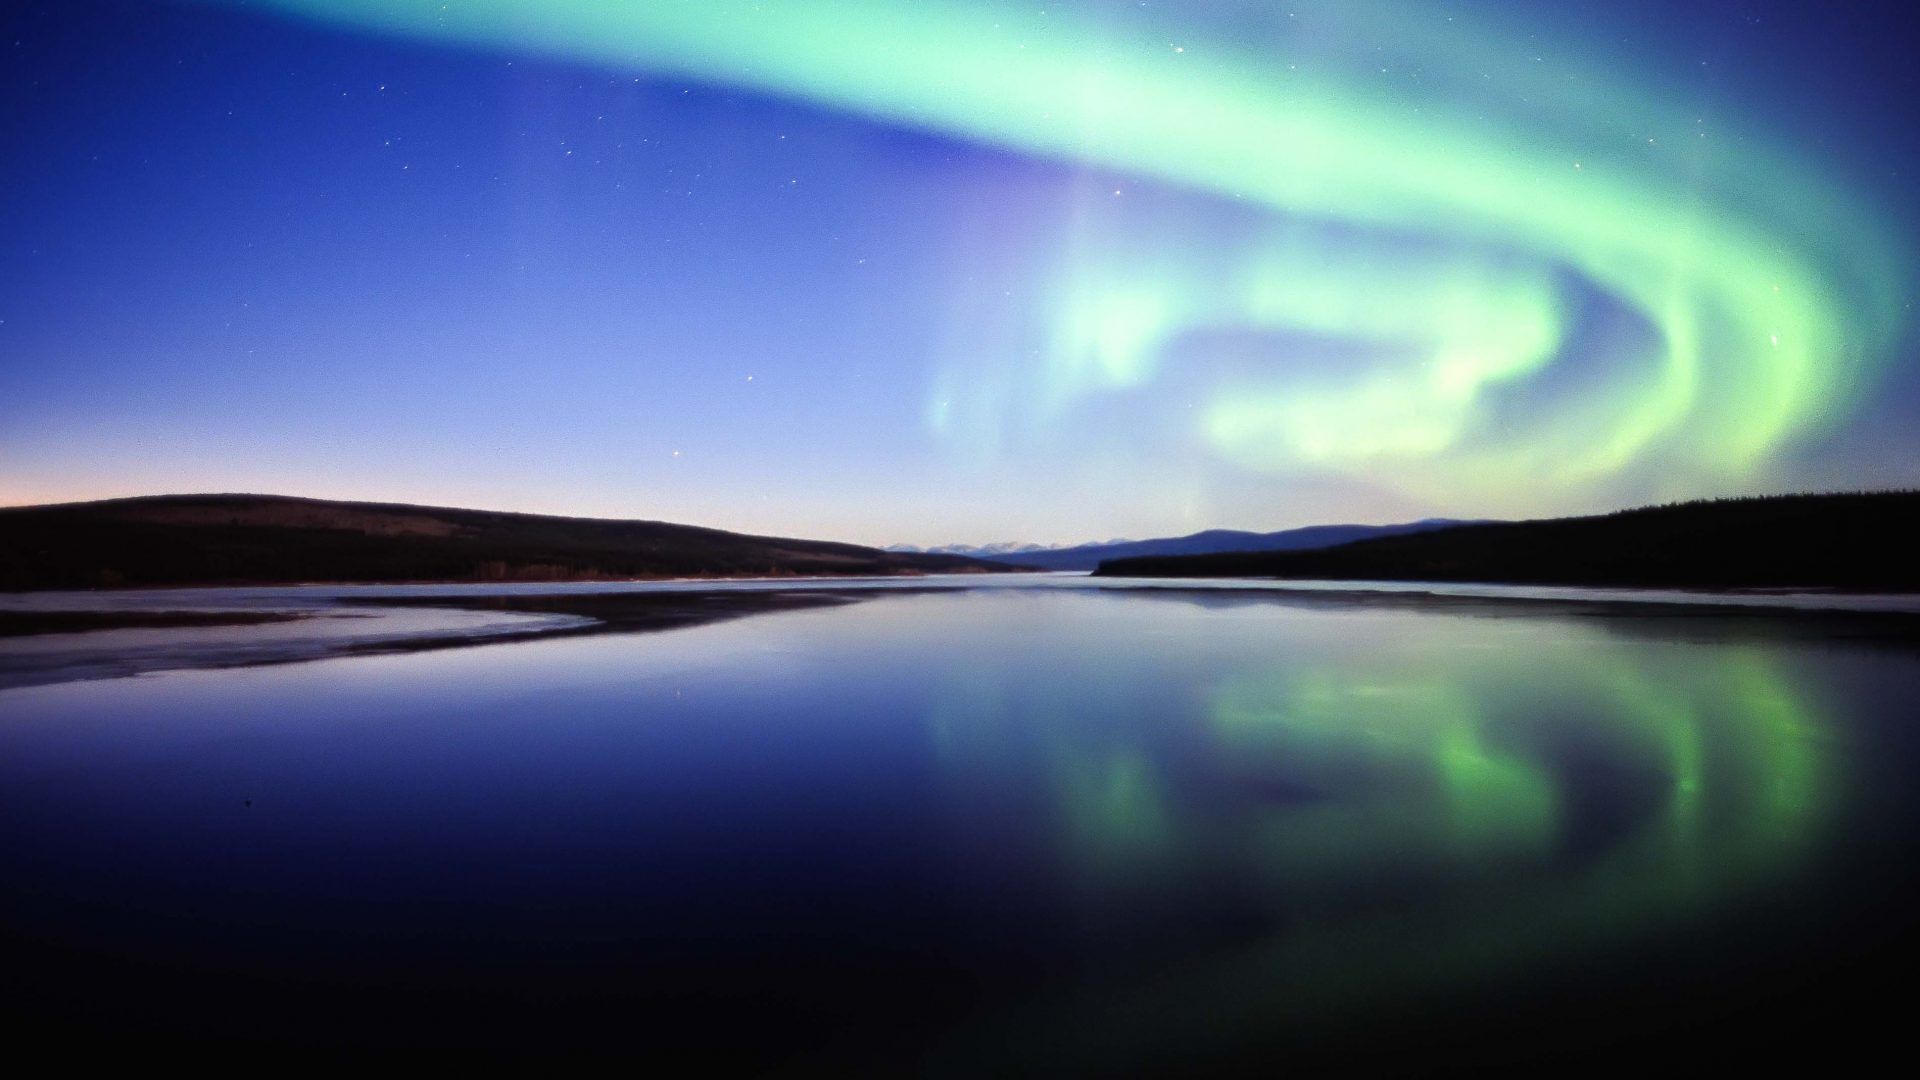 The northern lights shine brightly over a lake in the Yukon.